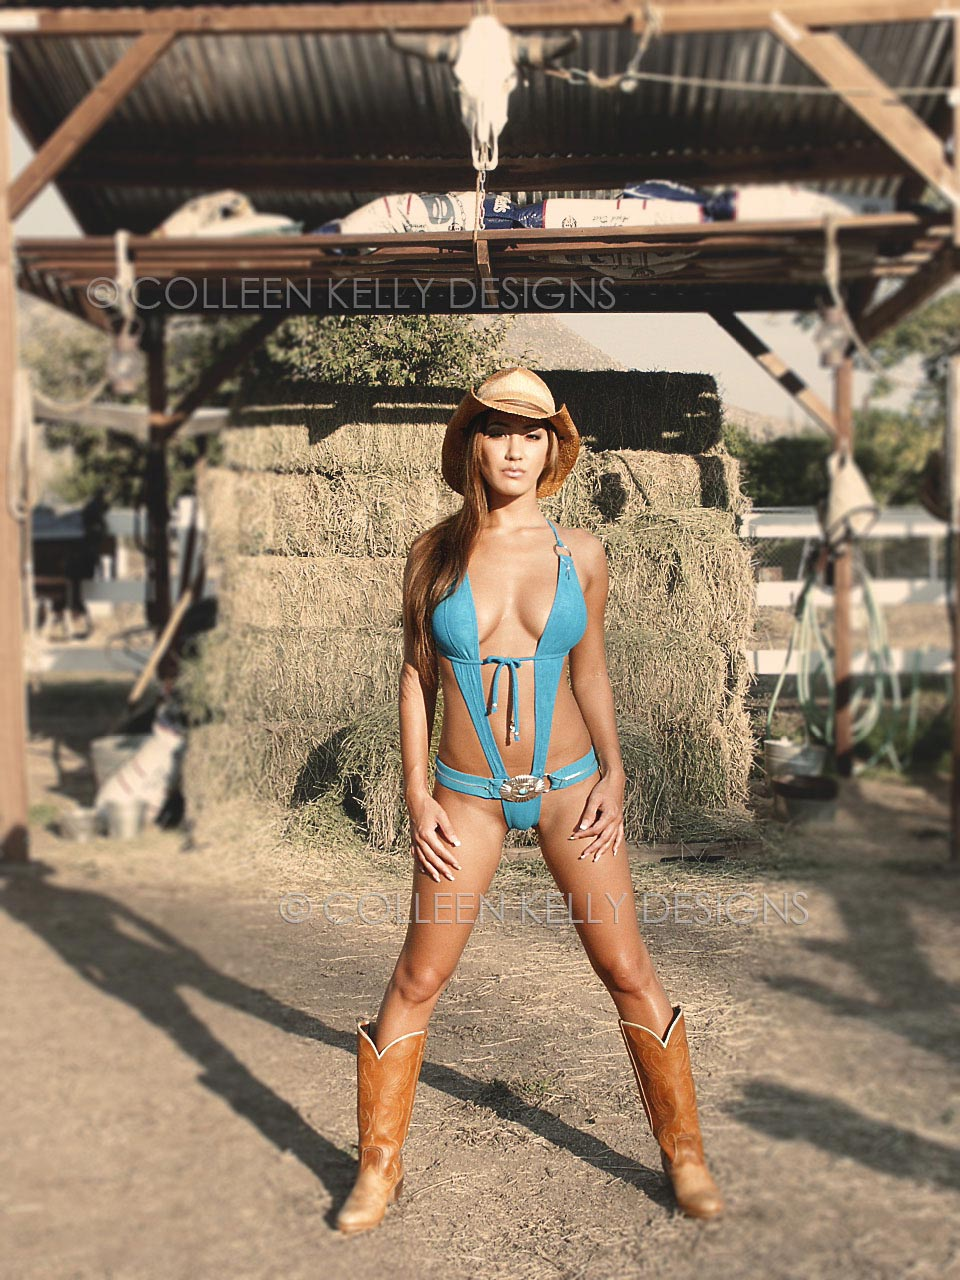 Colleen Kelly Designs Swimwear Style #1209 Image of Buckle Slingshot One-Piece